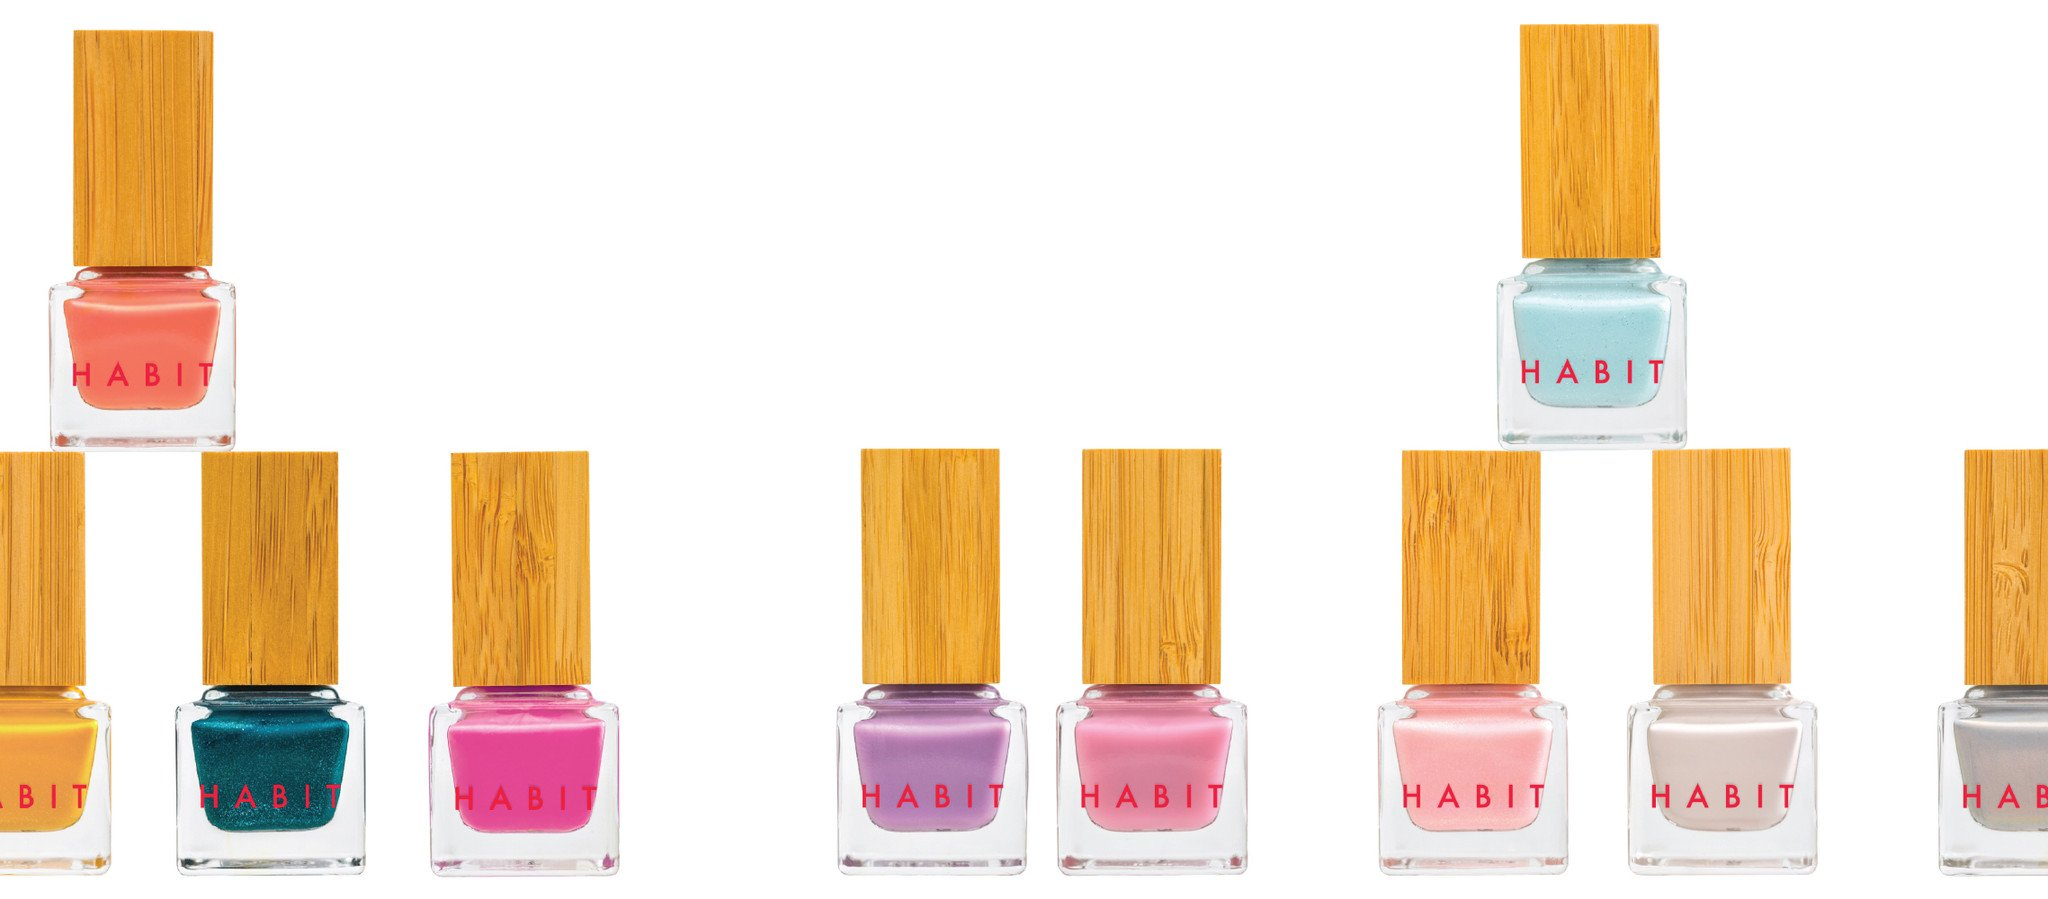 habit cosmetics nail polish